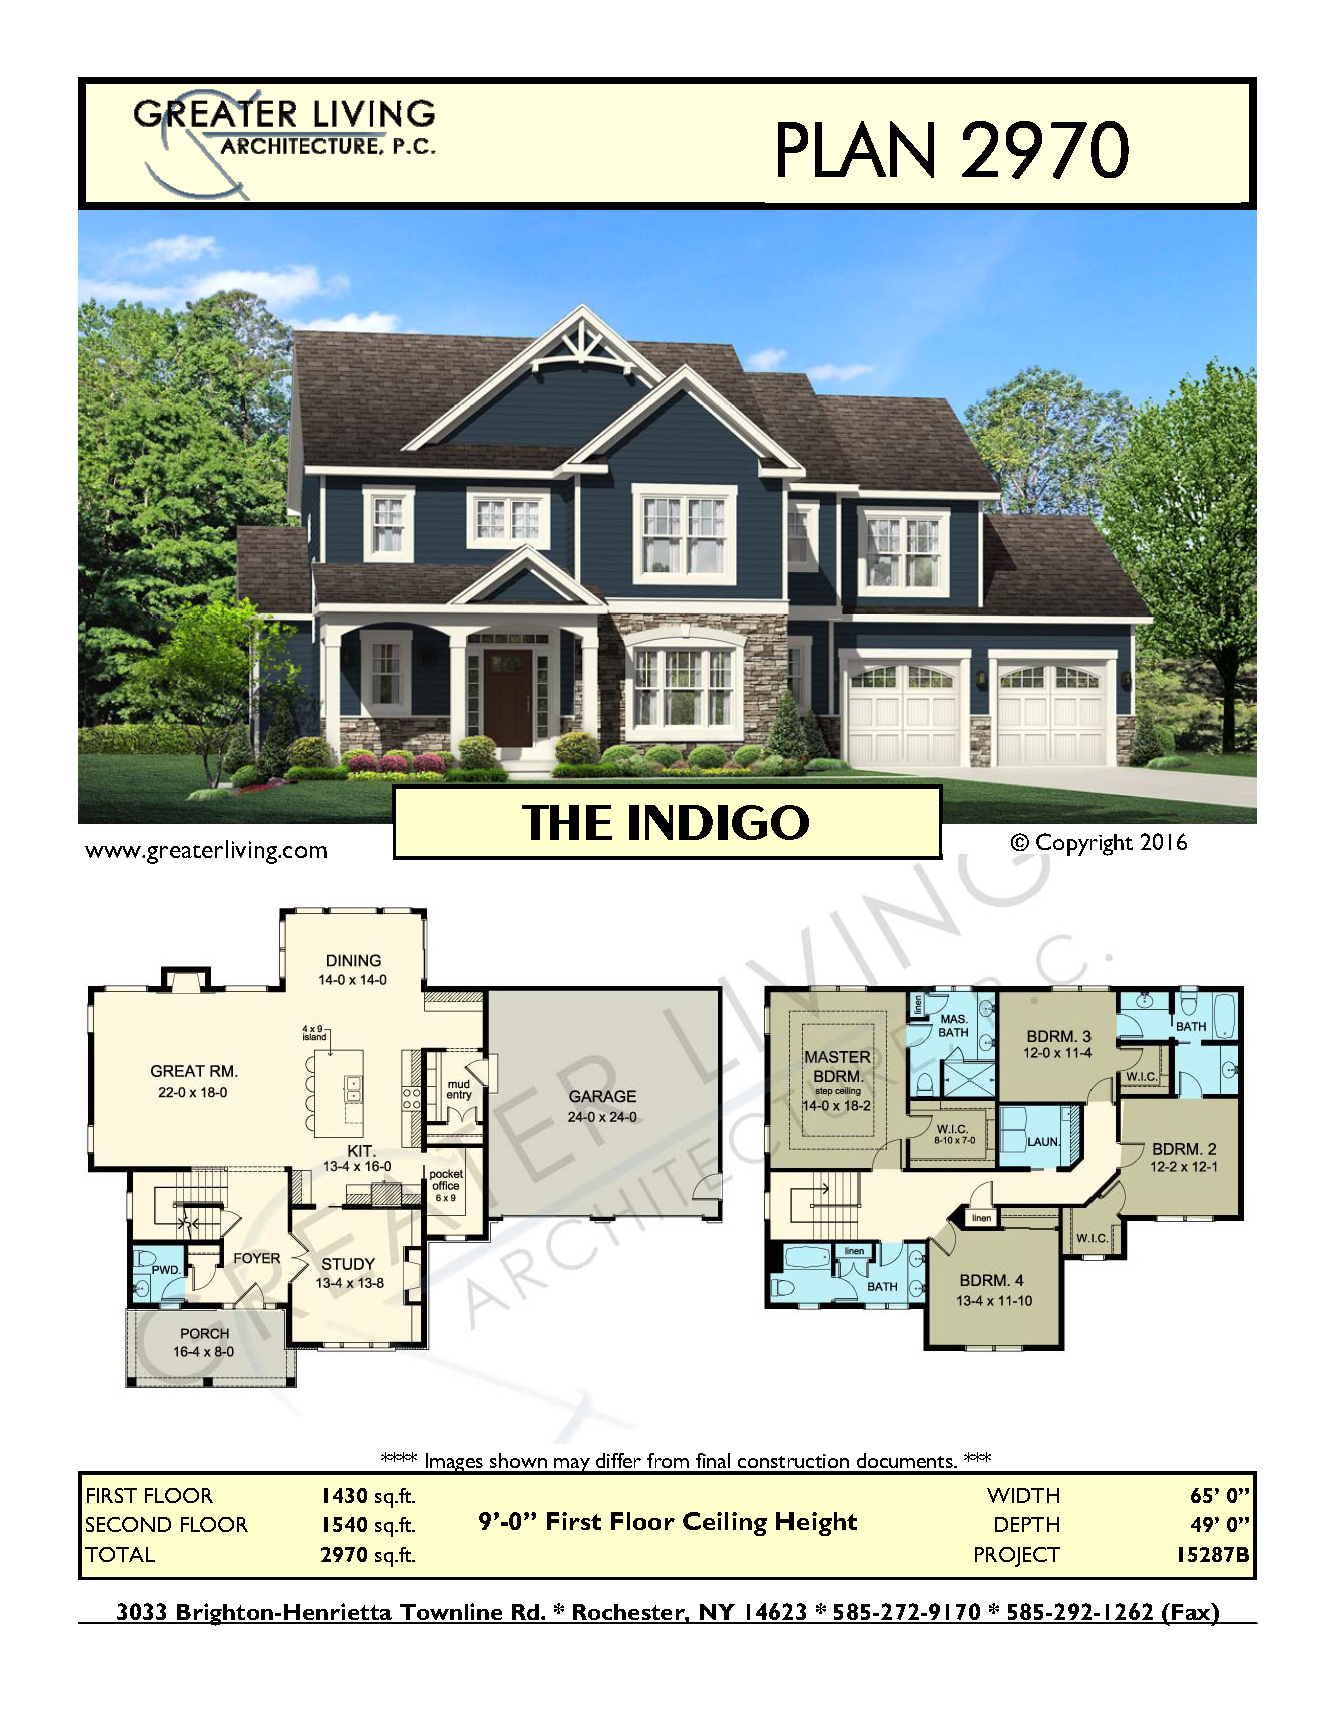 Delightful Plan 2970: THE   House Plans   2 Story House Plan   Greater Living  Architecture Part 29